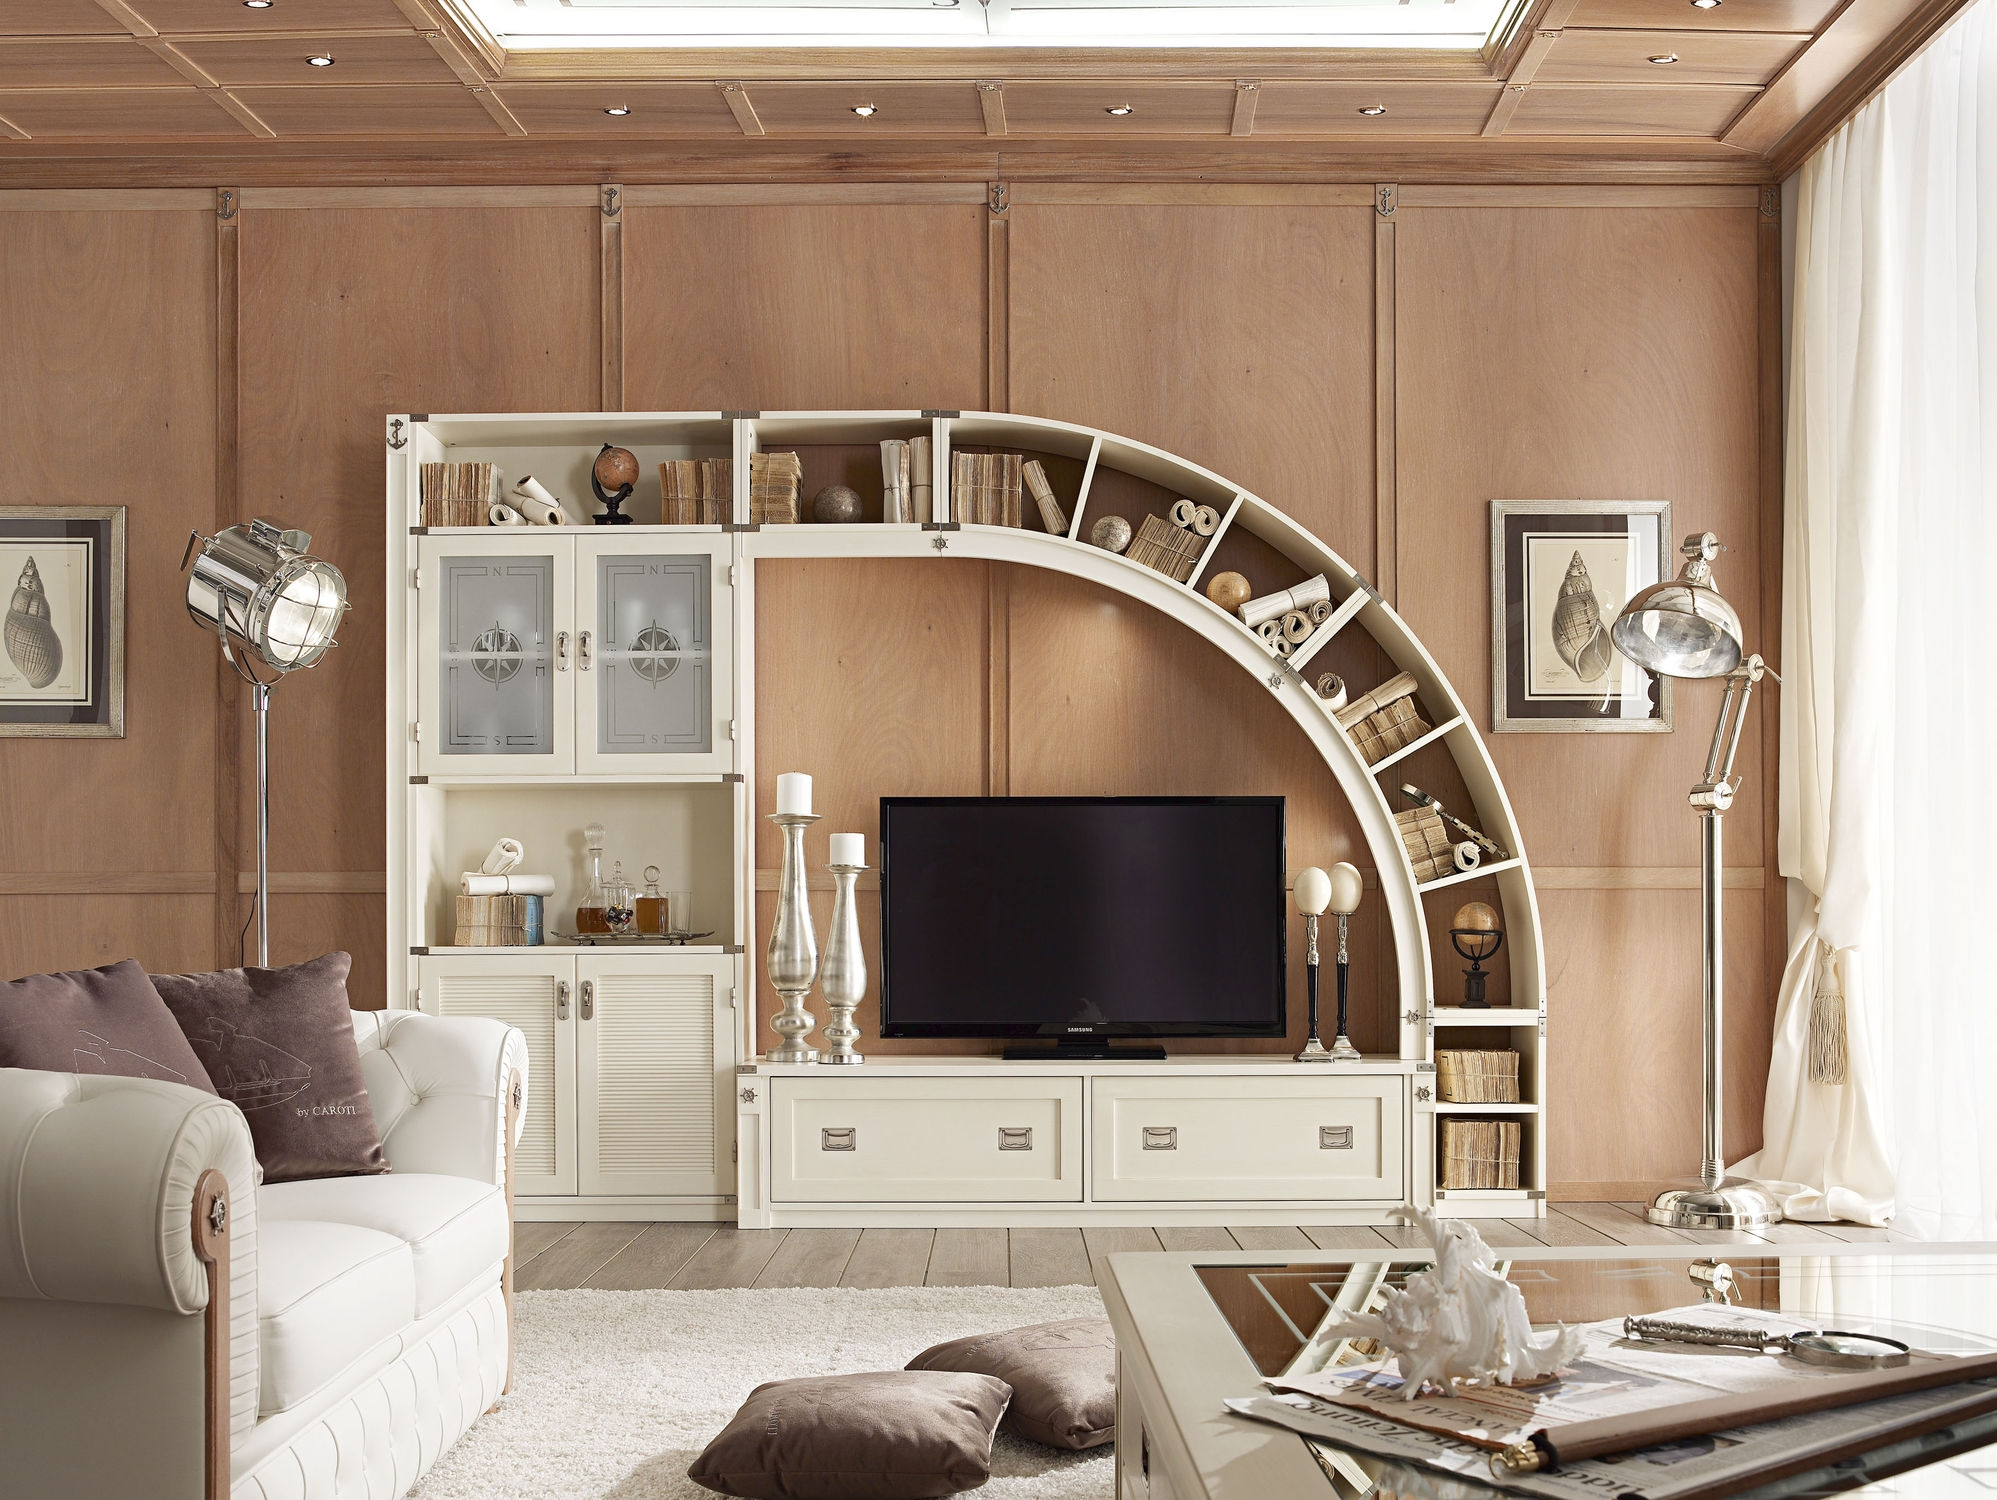 Decorationsamazing Tv Wall Unit With Carving Wooden Bookcase At Throughout Tv Unit With Bookcase (View 13 of 15)